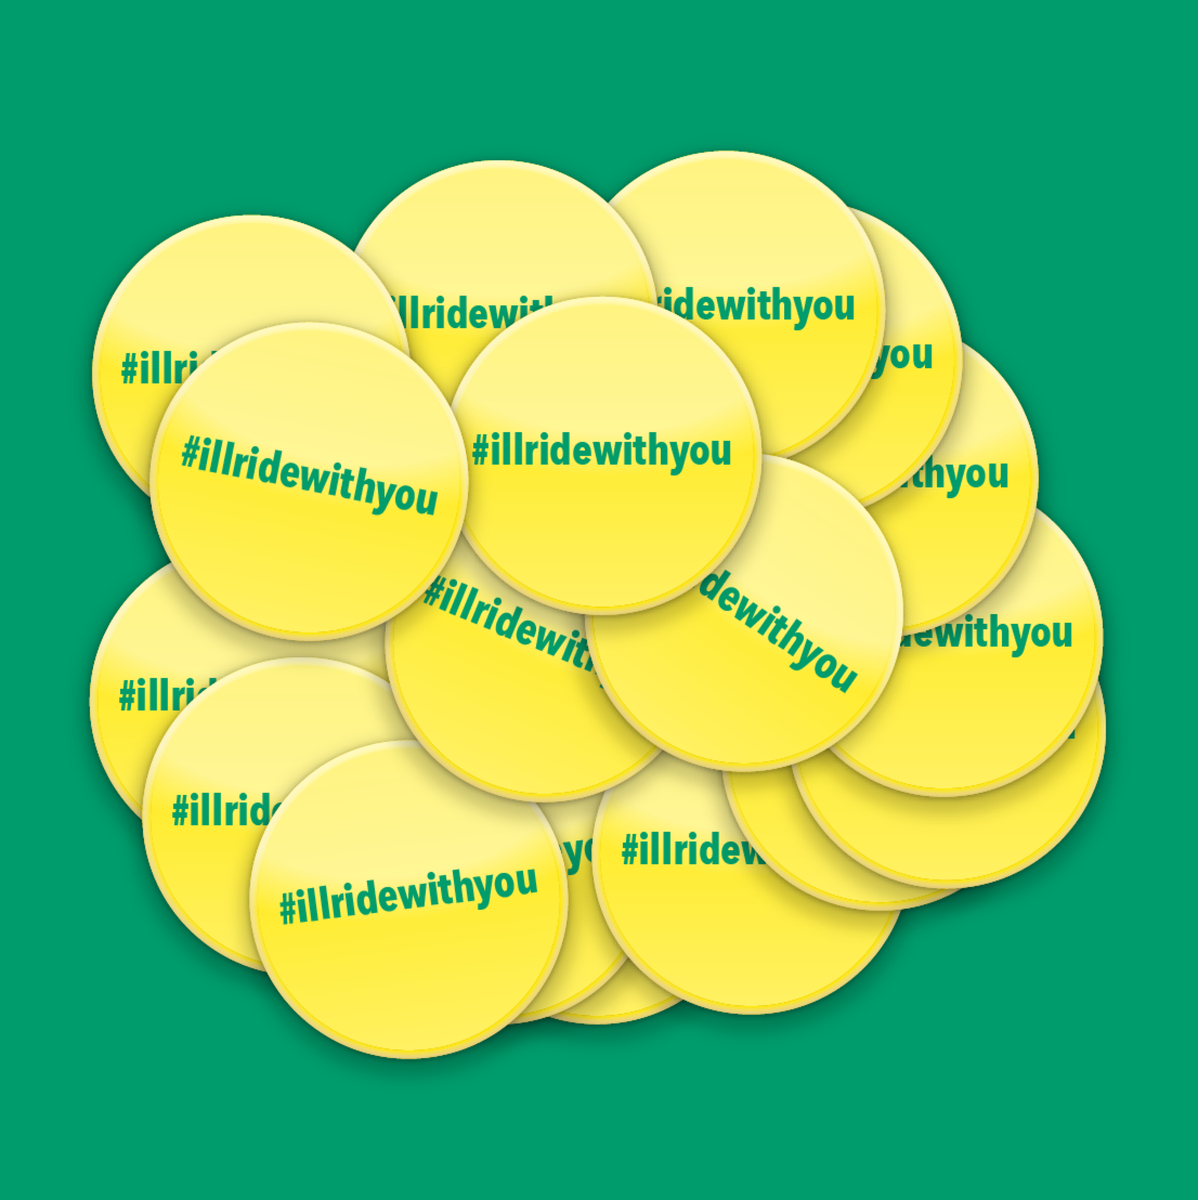 @_AmyGray_ I suggest we get badges made up and out into the hands of #illridewithyou folk. Make it an unspoken deal. http://t.co/IbWxdA2CyT